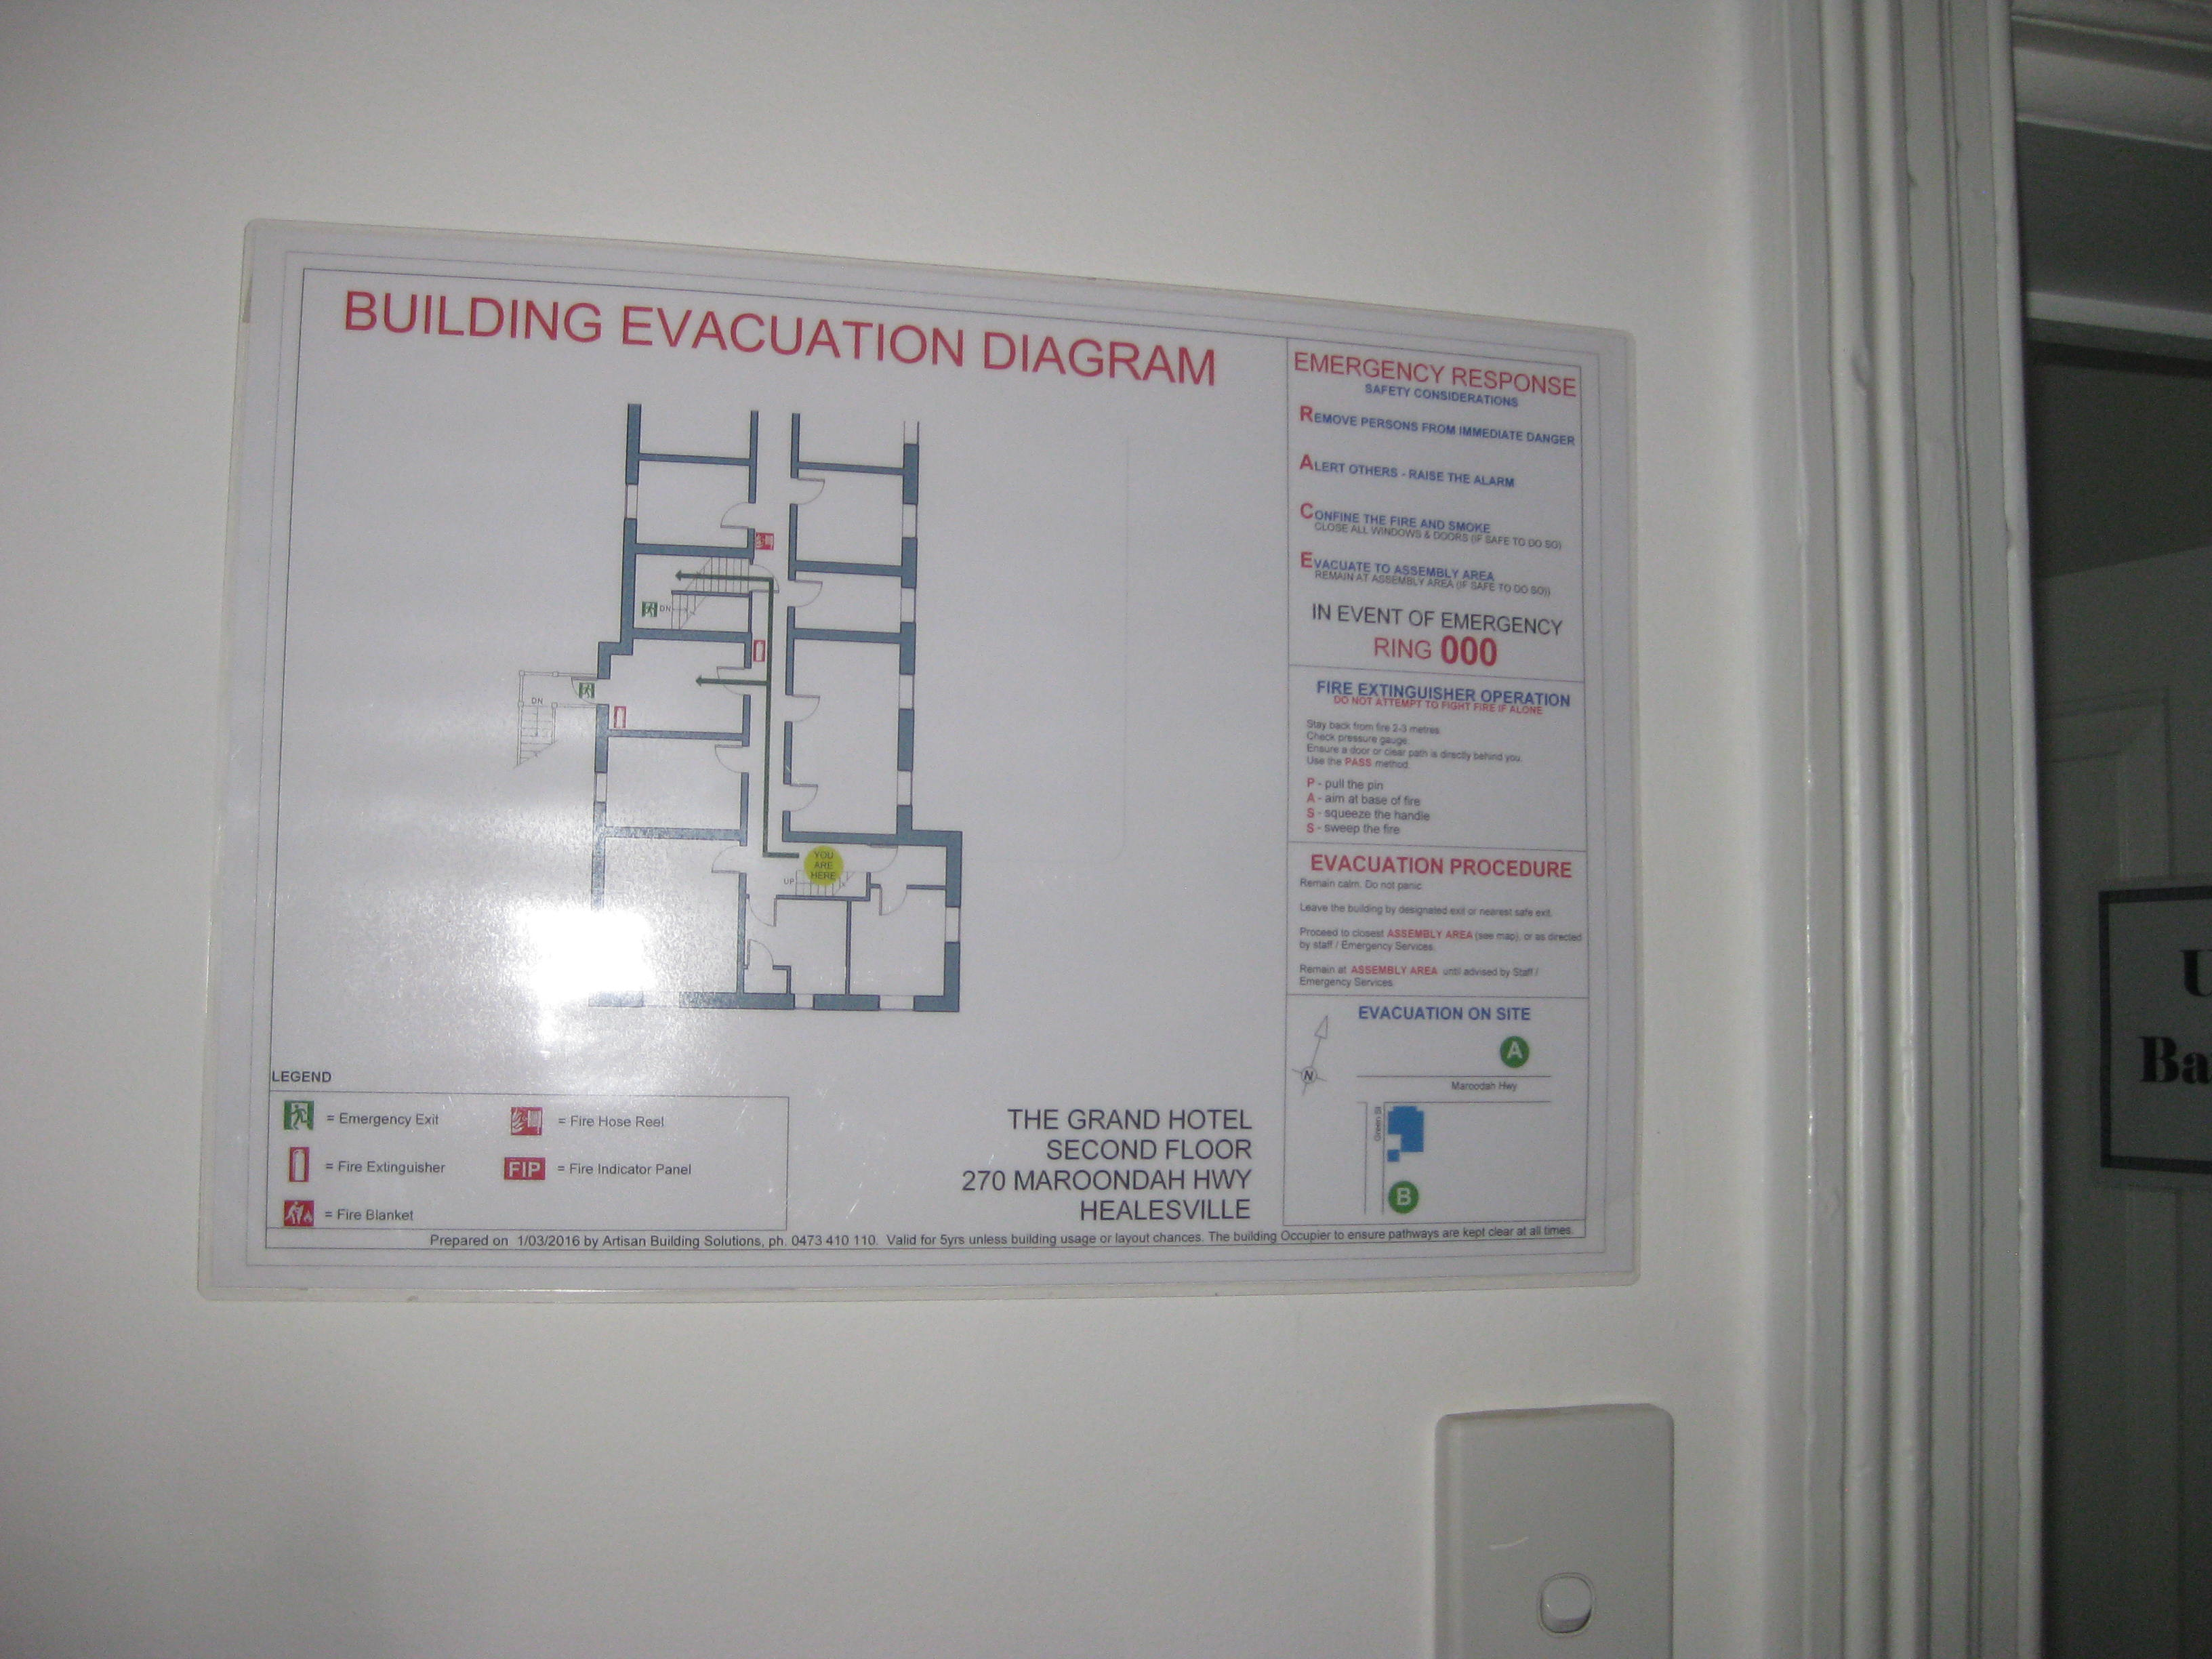 News fire protection services melbourne archives page 2 of 5 image 5 simple evacuation diagram for a hotel level 2 asfbconference2016 Images